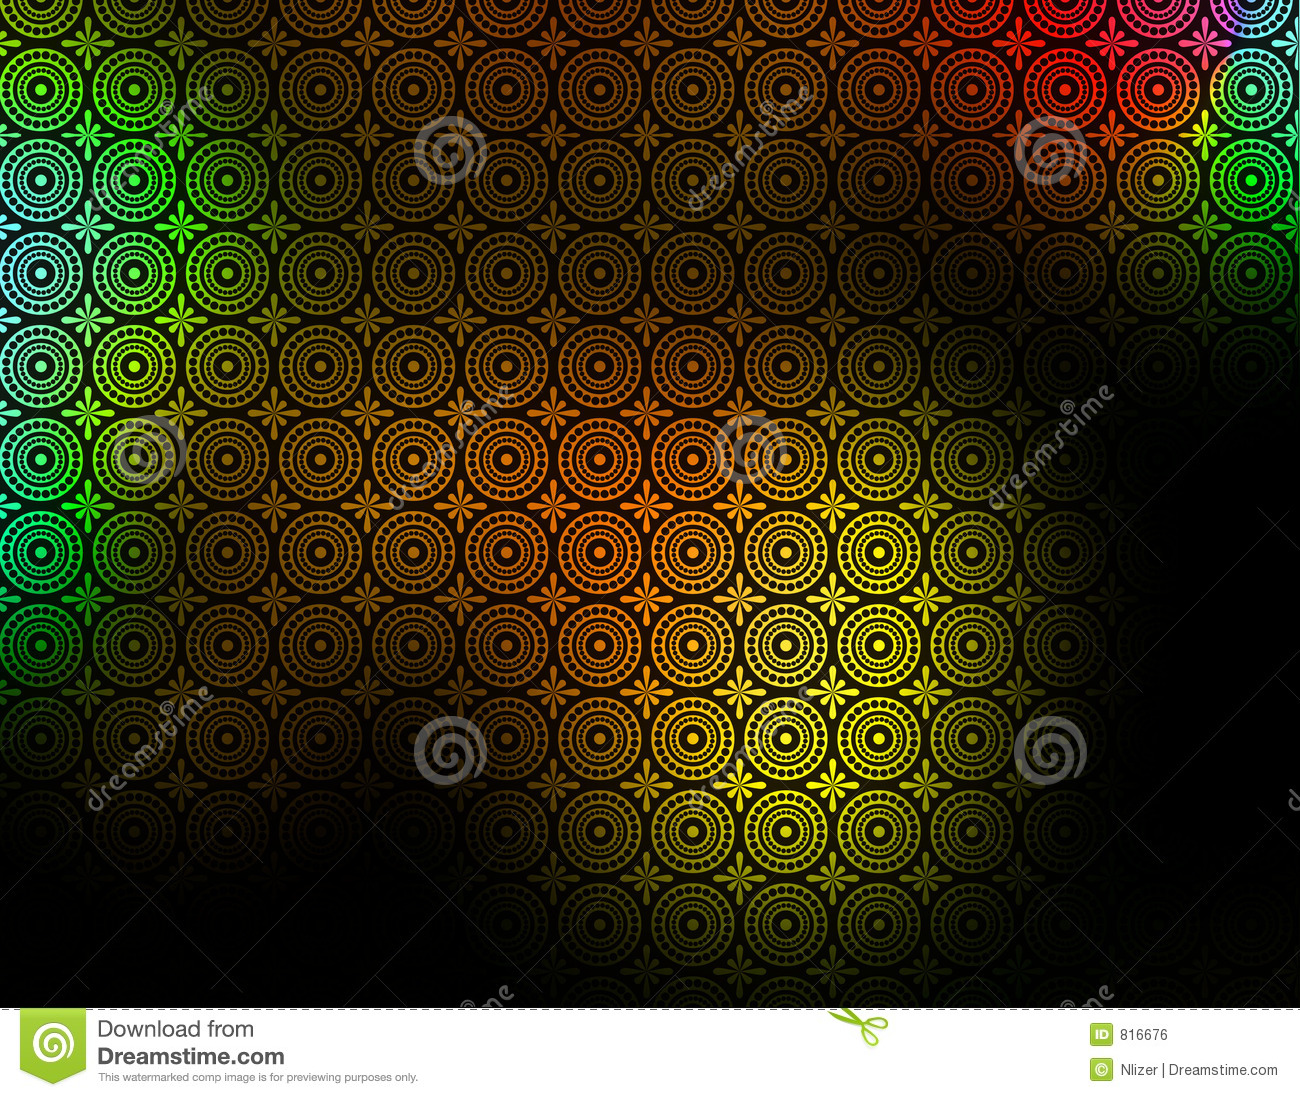 Black Yellow Red Green Patterned Background wallpaper